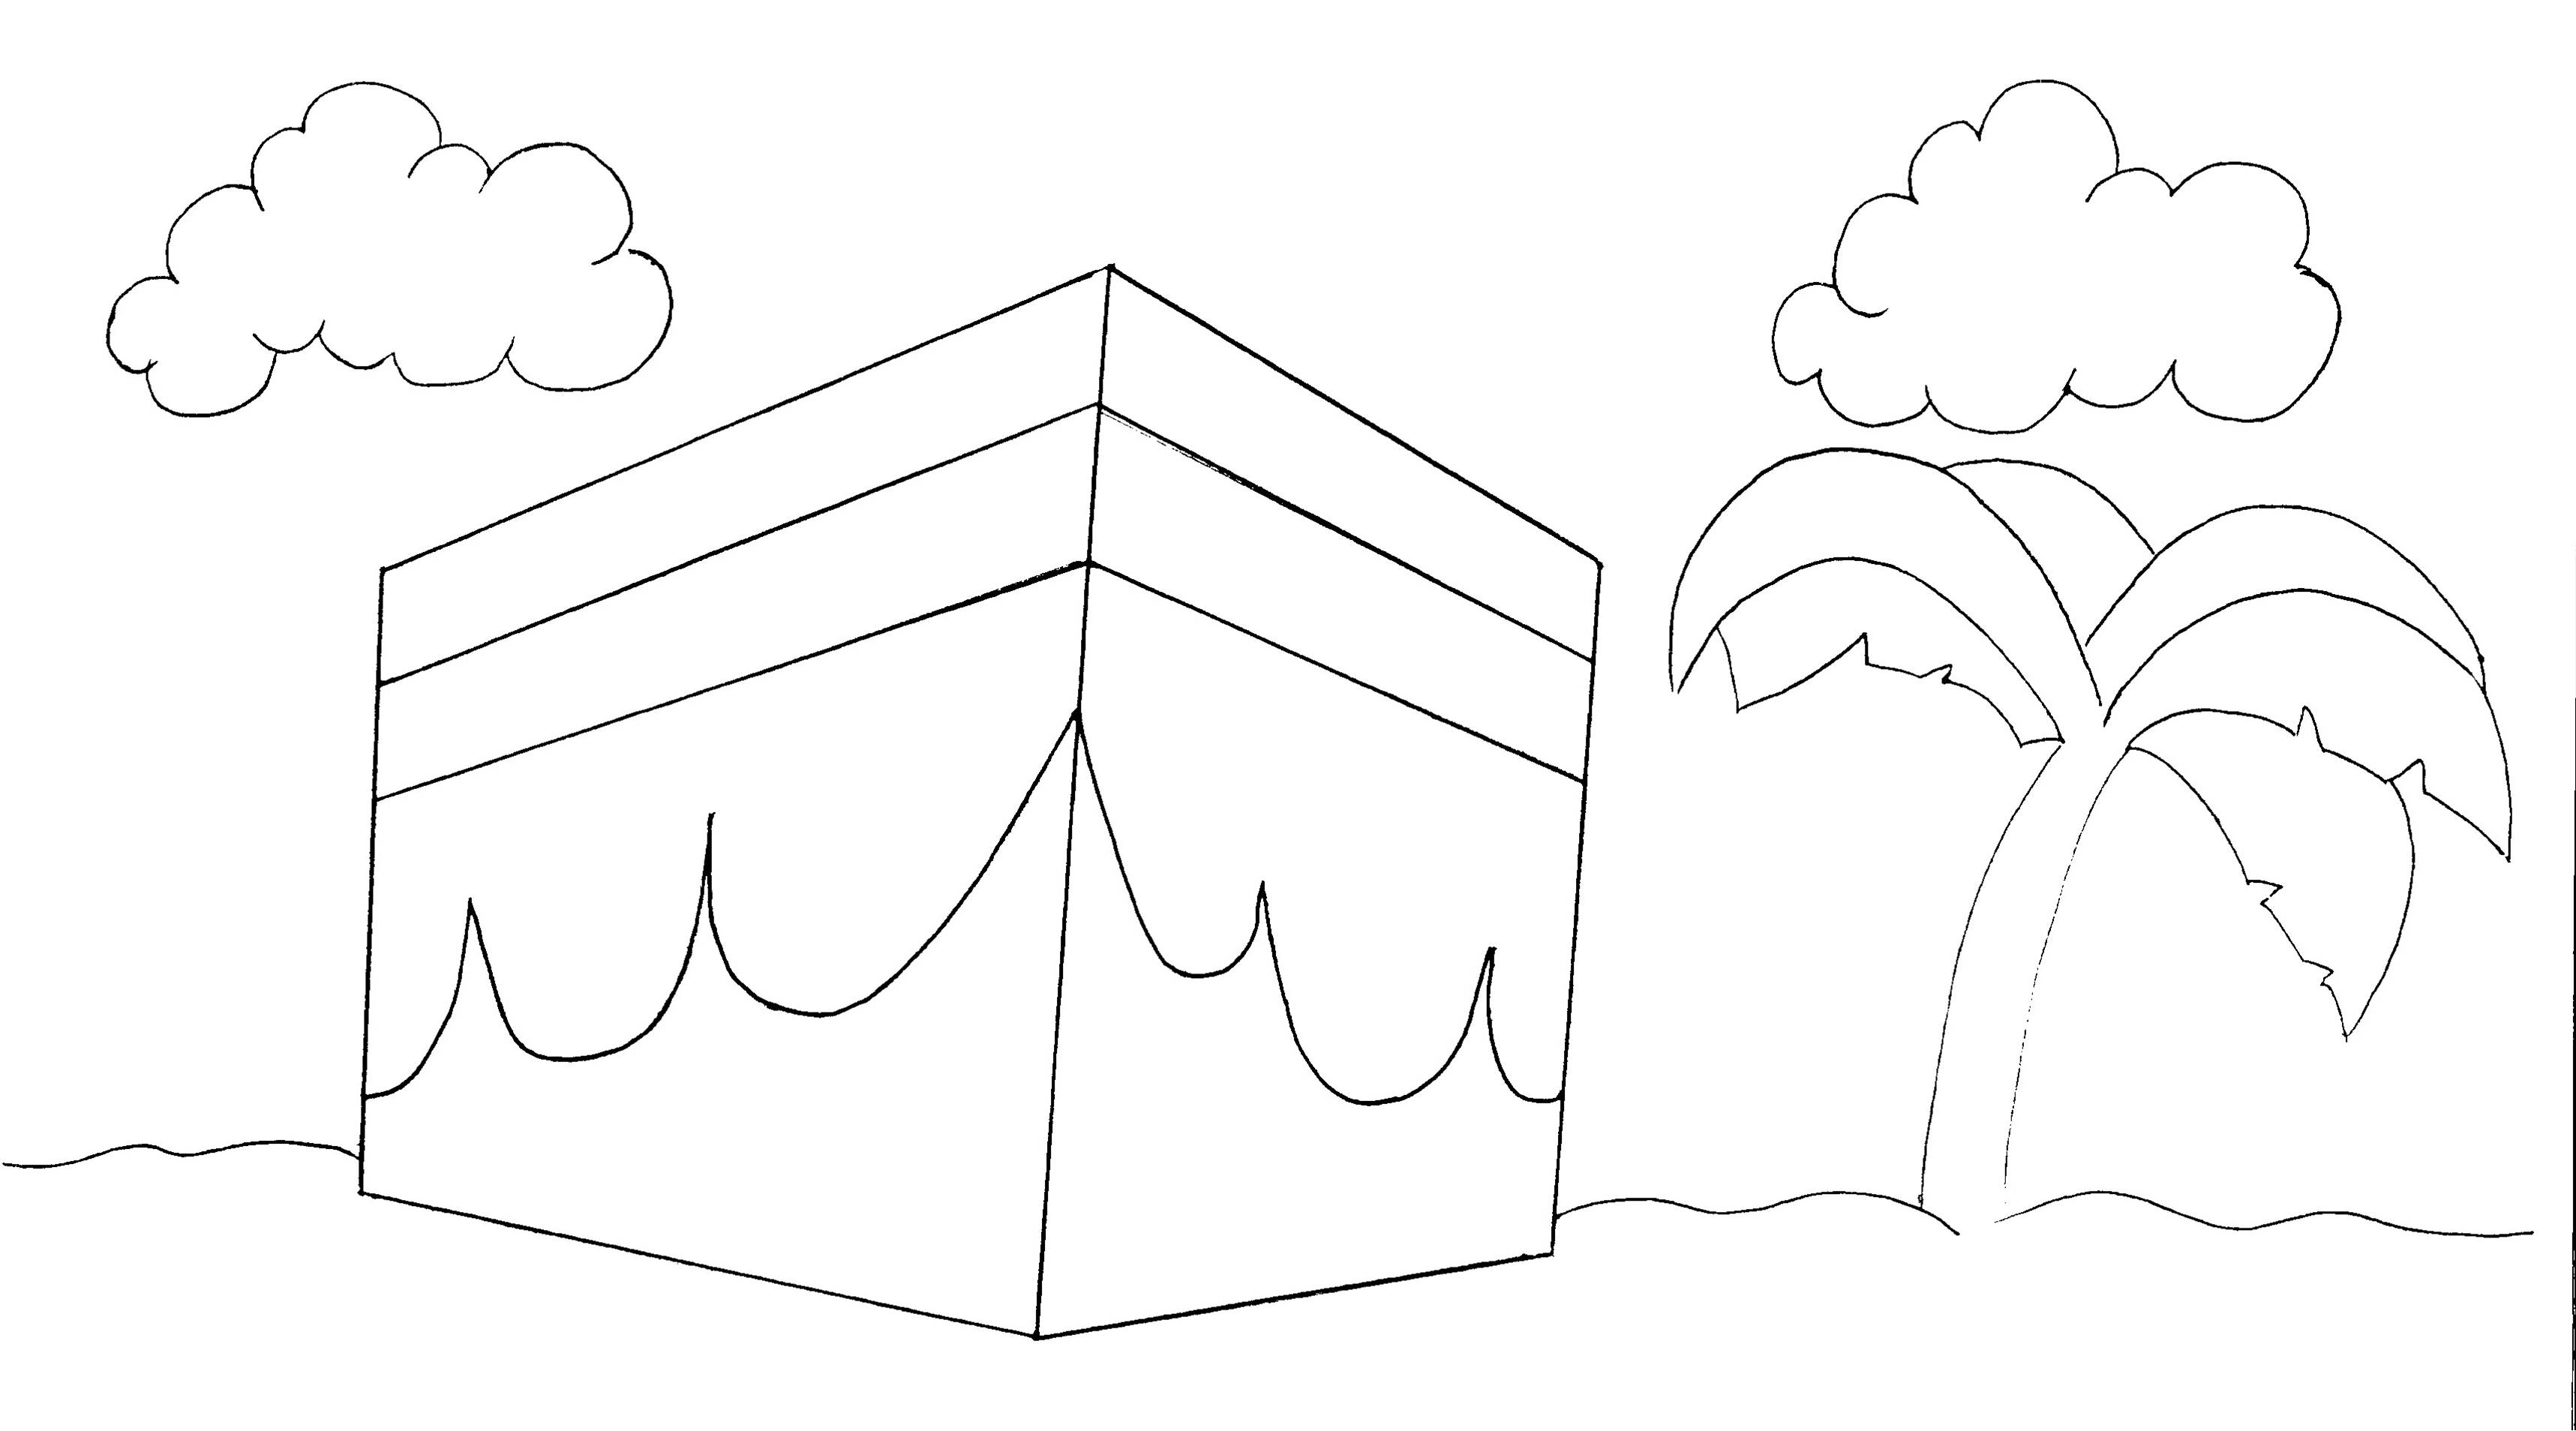 Kaaba Coloring Page Easy Related Keywords Suggestions Hajj Coloring Pages